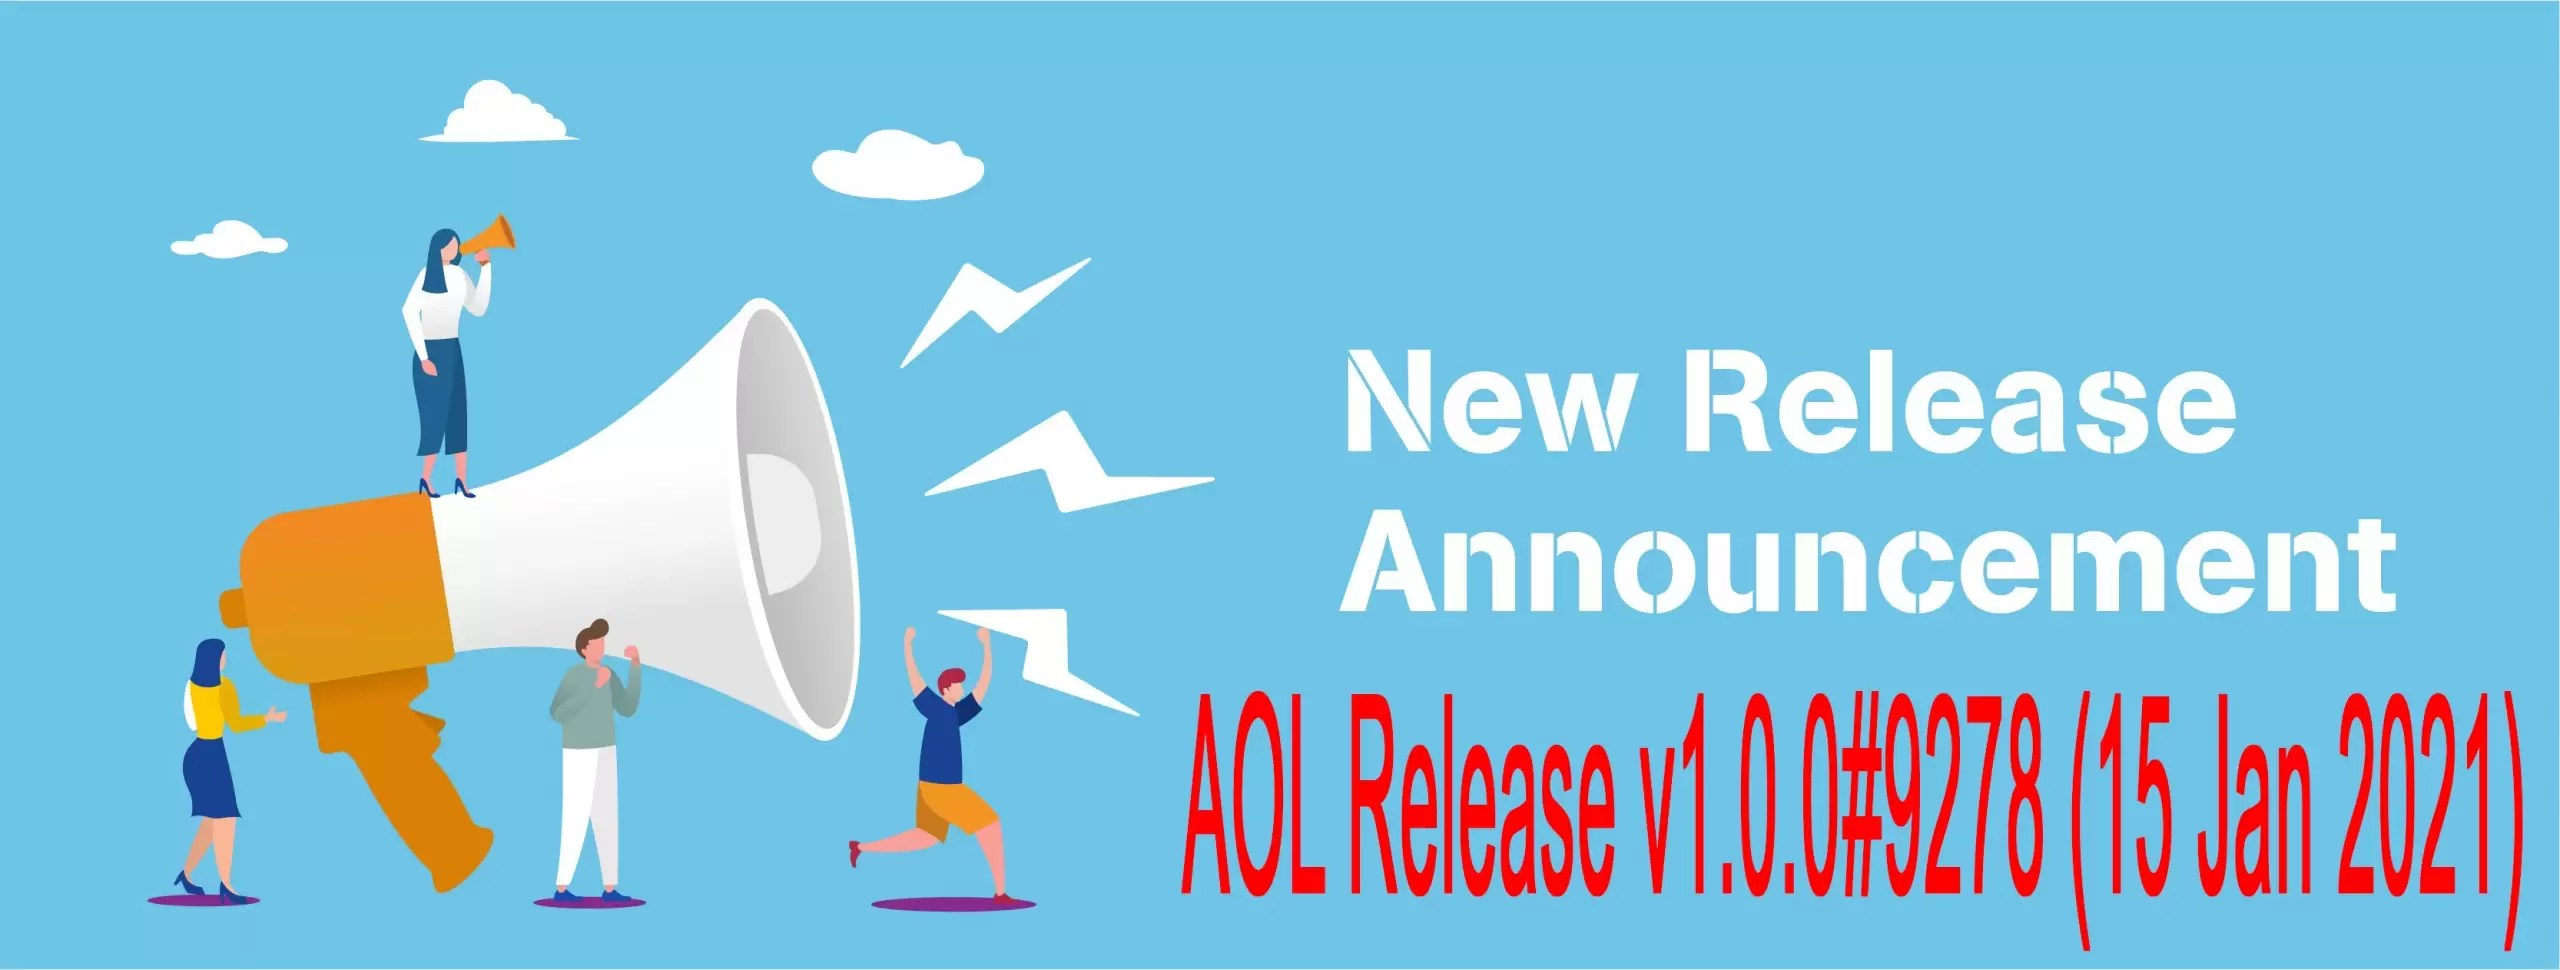 Accurate Online Release v1.0.0#9278 (15 Jan 2021)